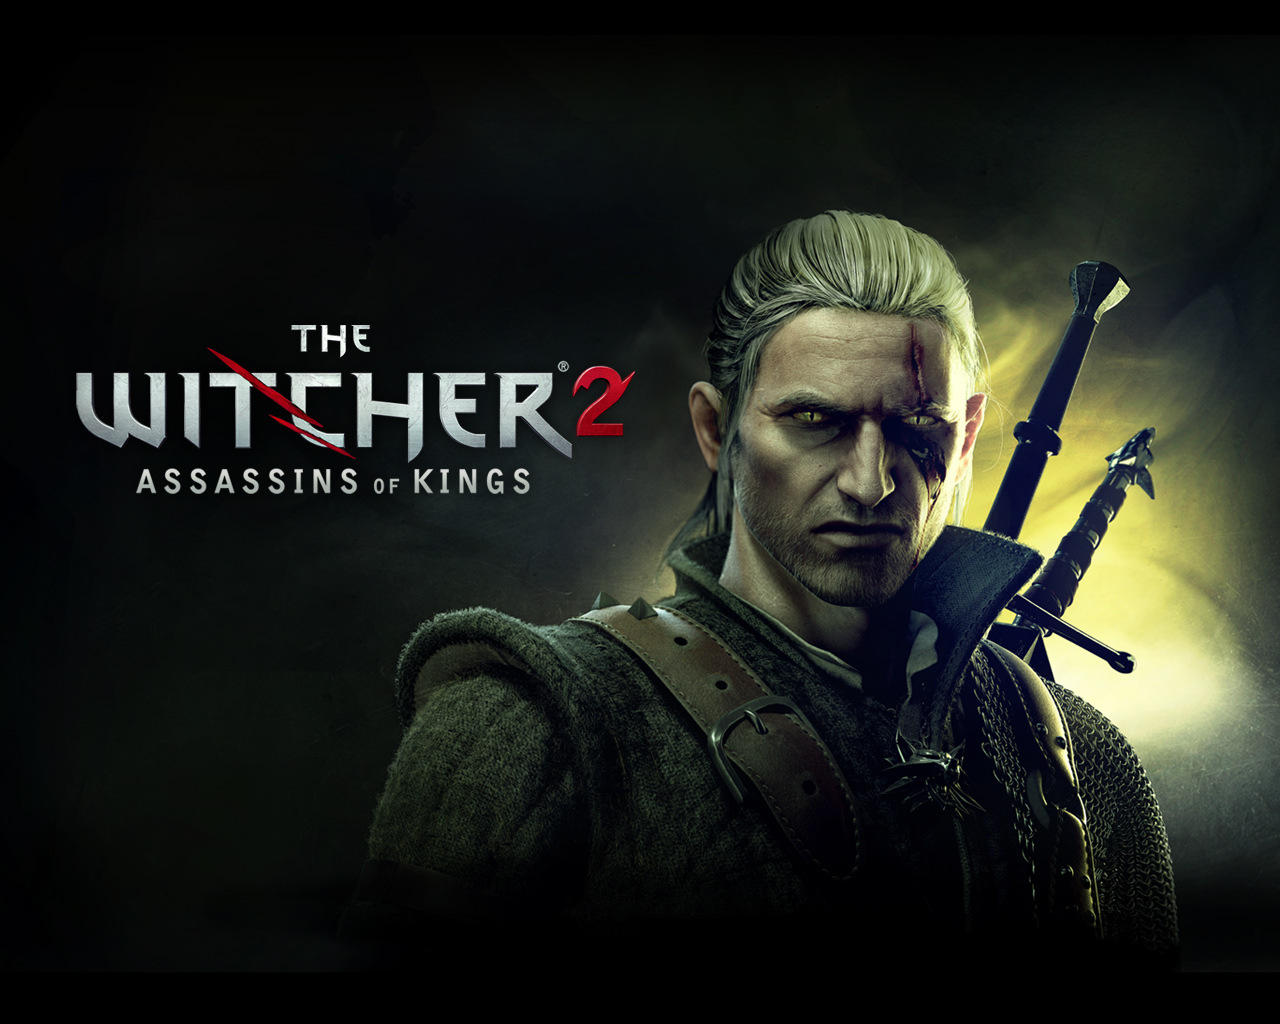 Why The Witcher 2 is Better Than Skyrim